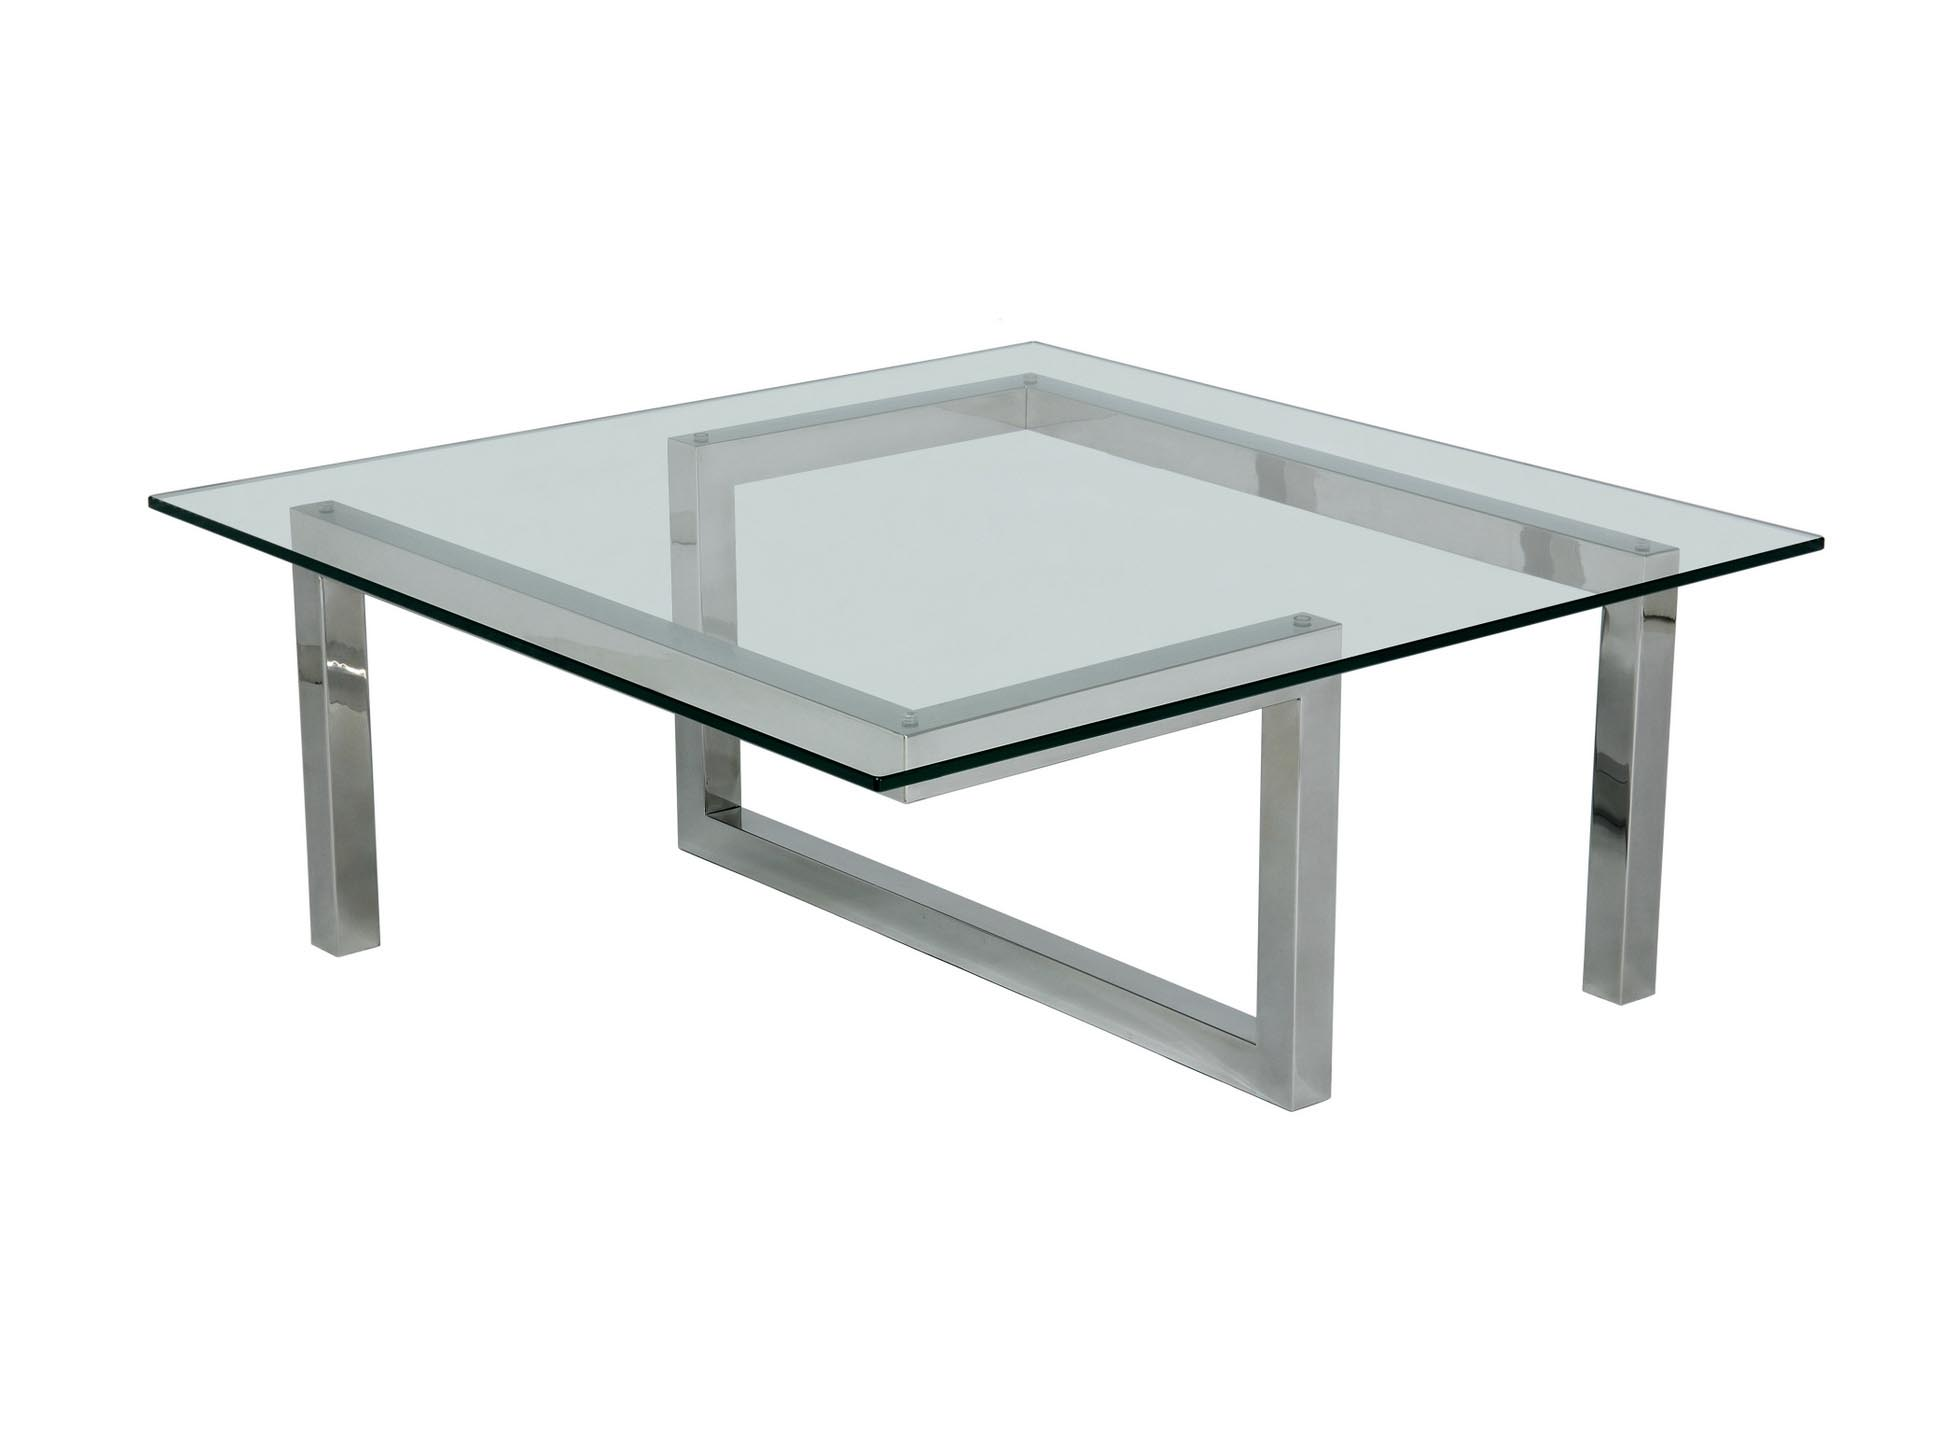 Stainless steel and glass coffee tables coffee table design ideas Metal glass top coffee table